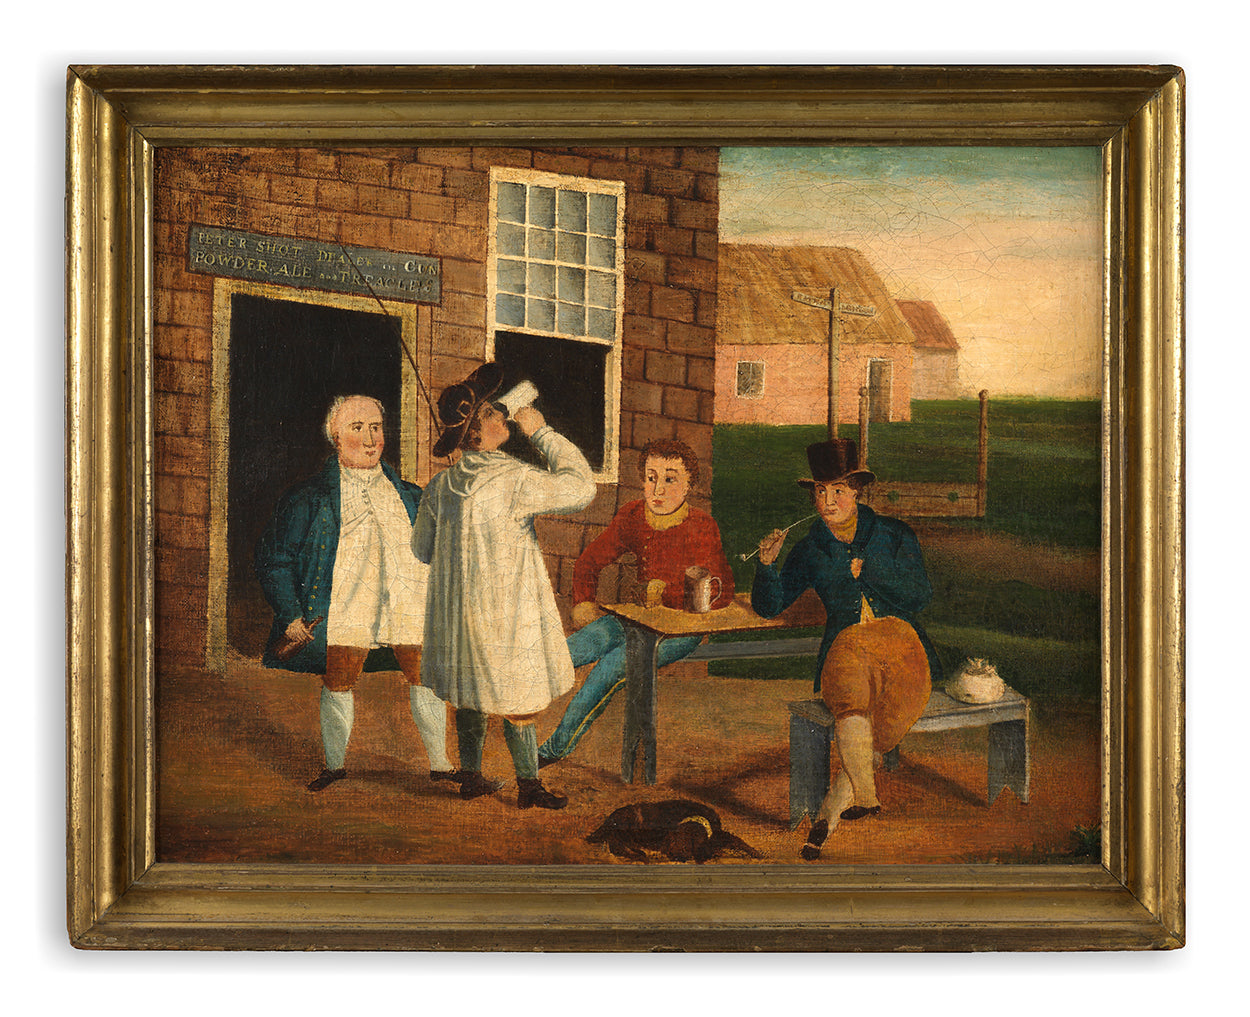 Figures Gathered Together Outside a Tavern